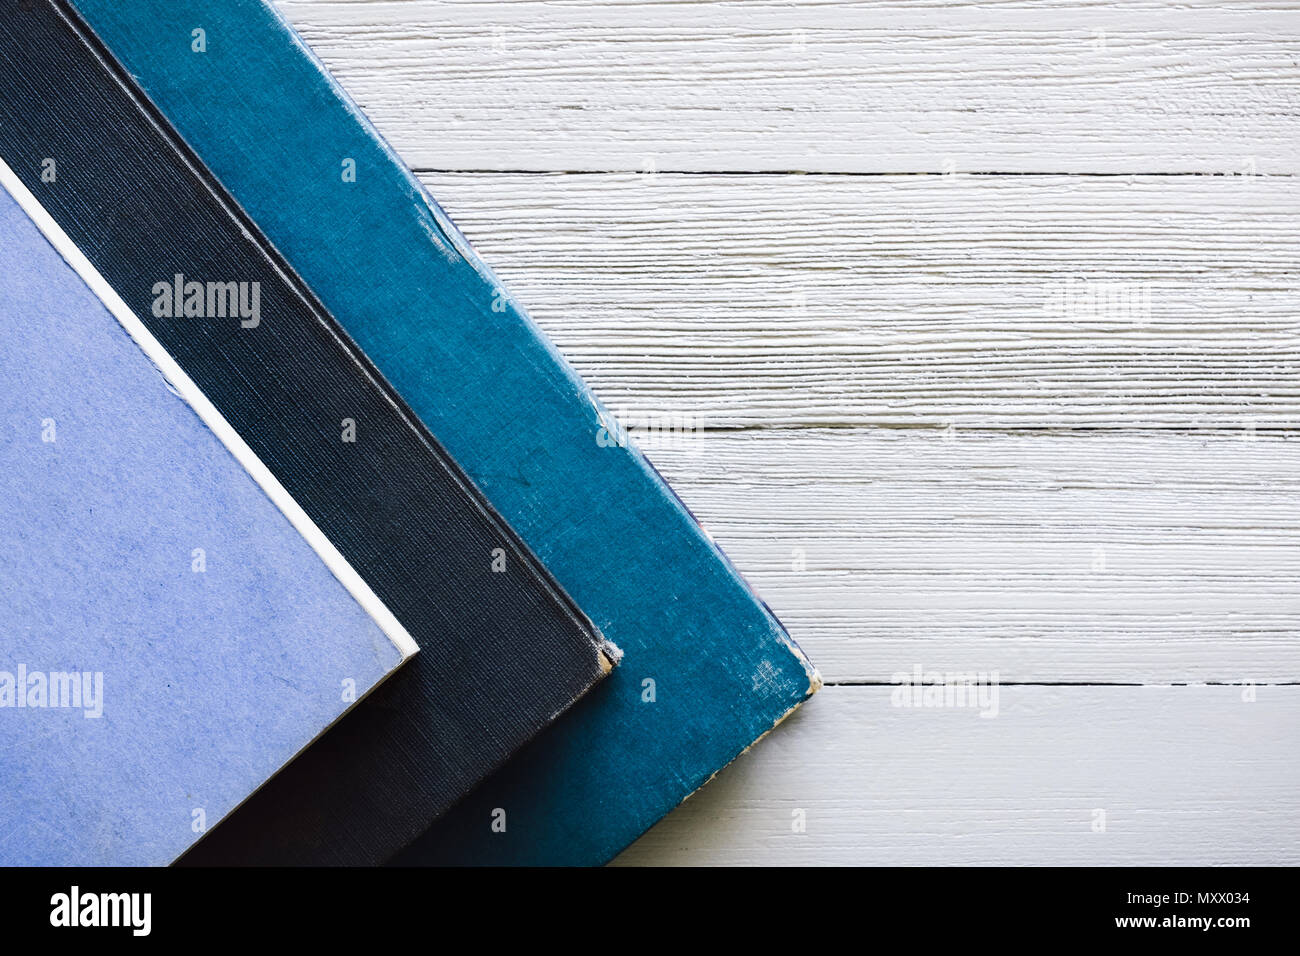 Stacked Blue Covered Books on White Table - Stock Image